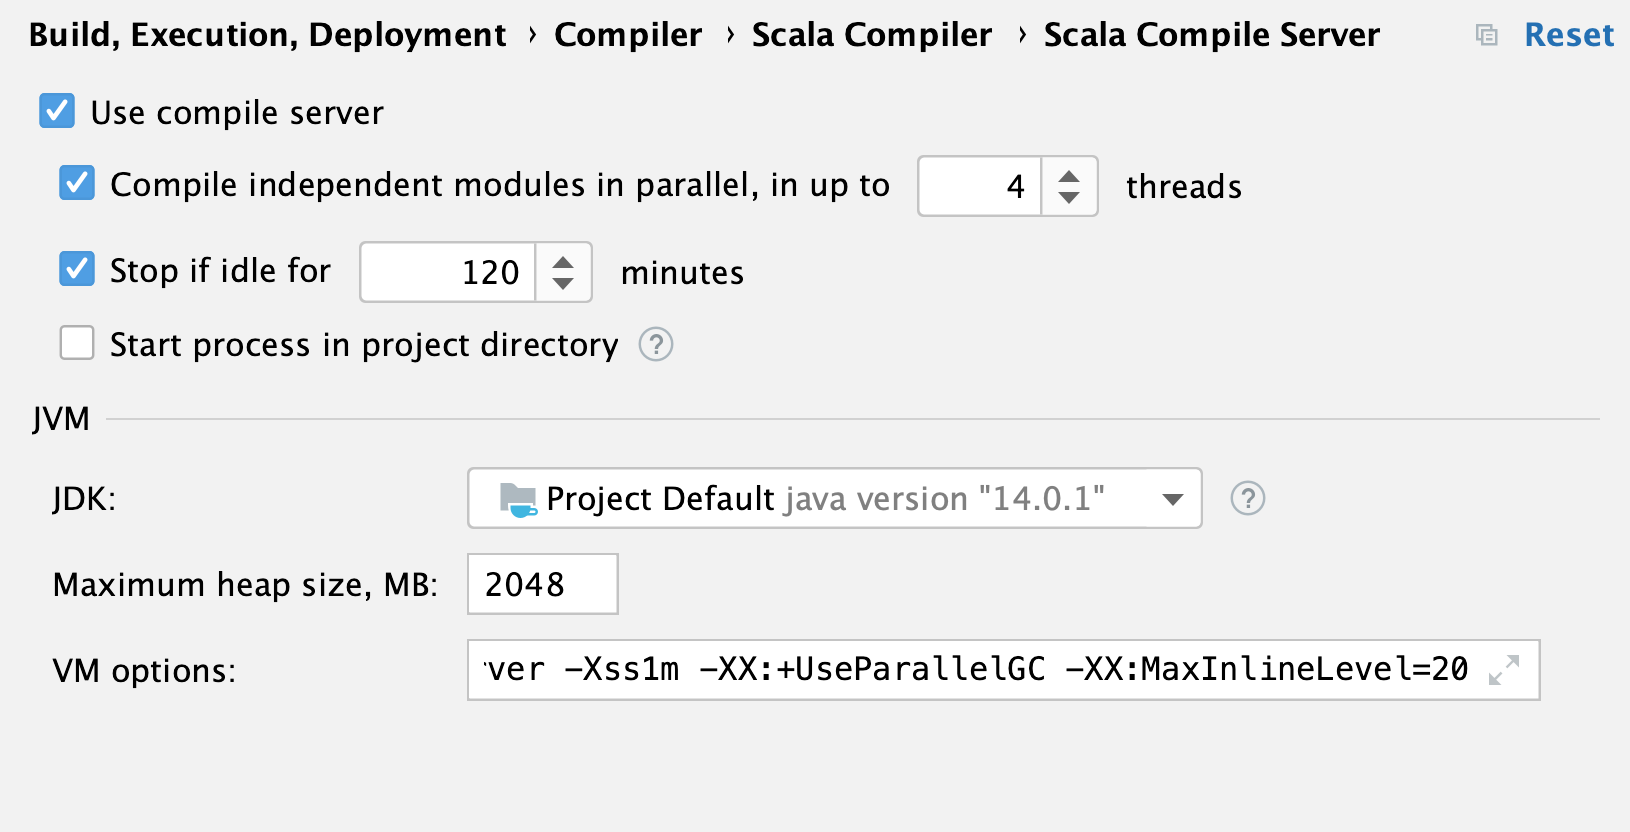 the Scala Compiler Server settings